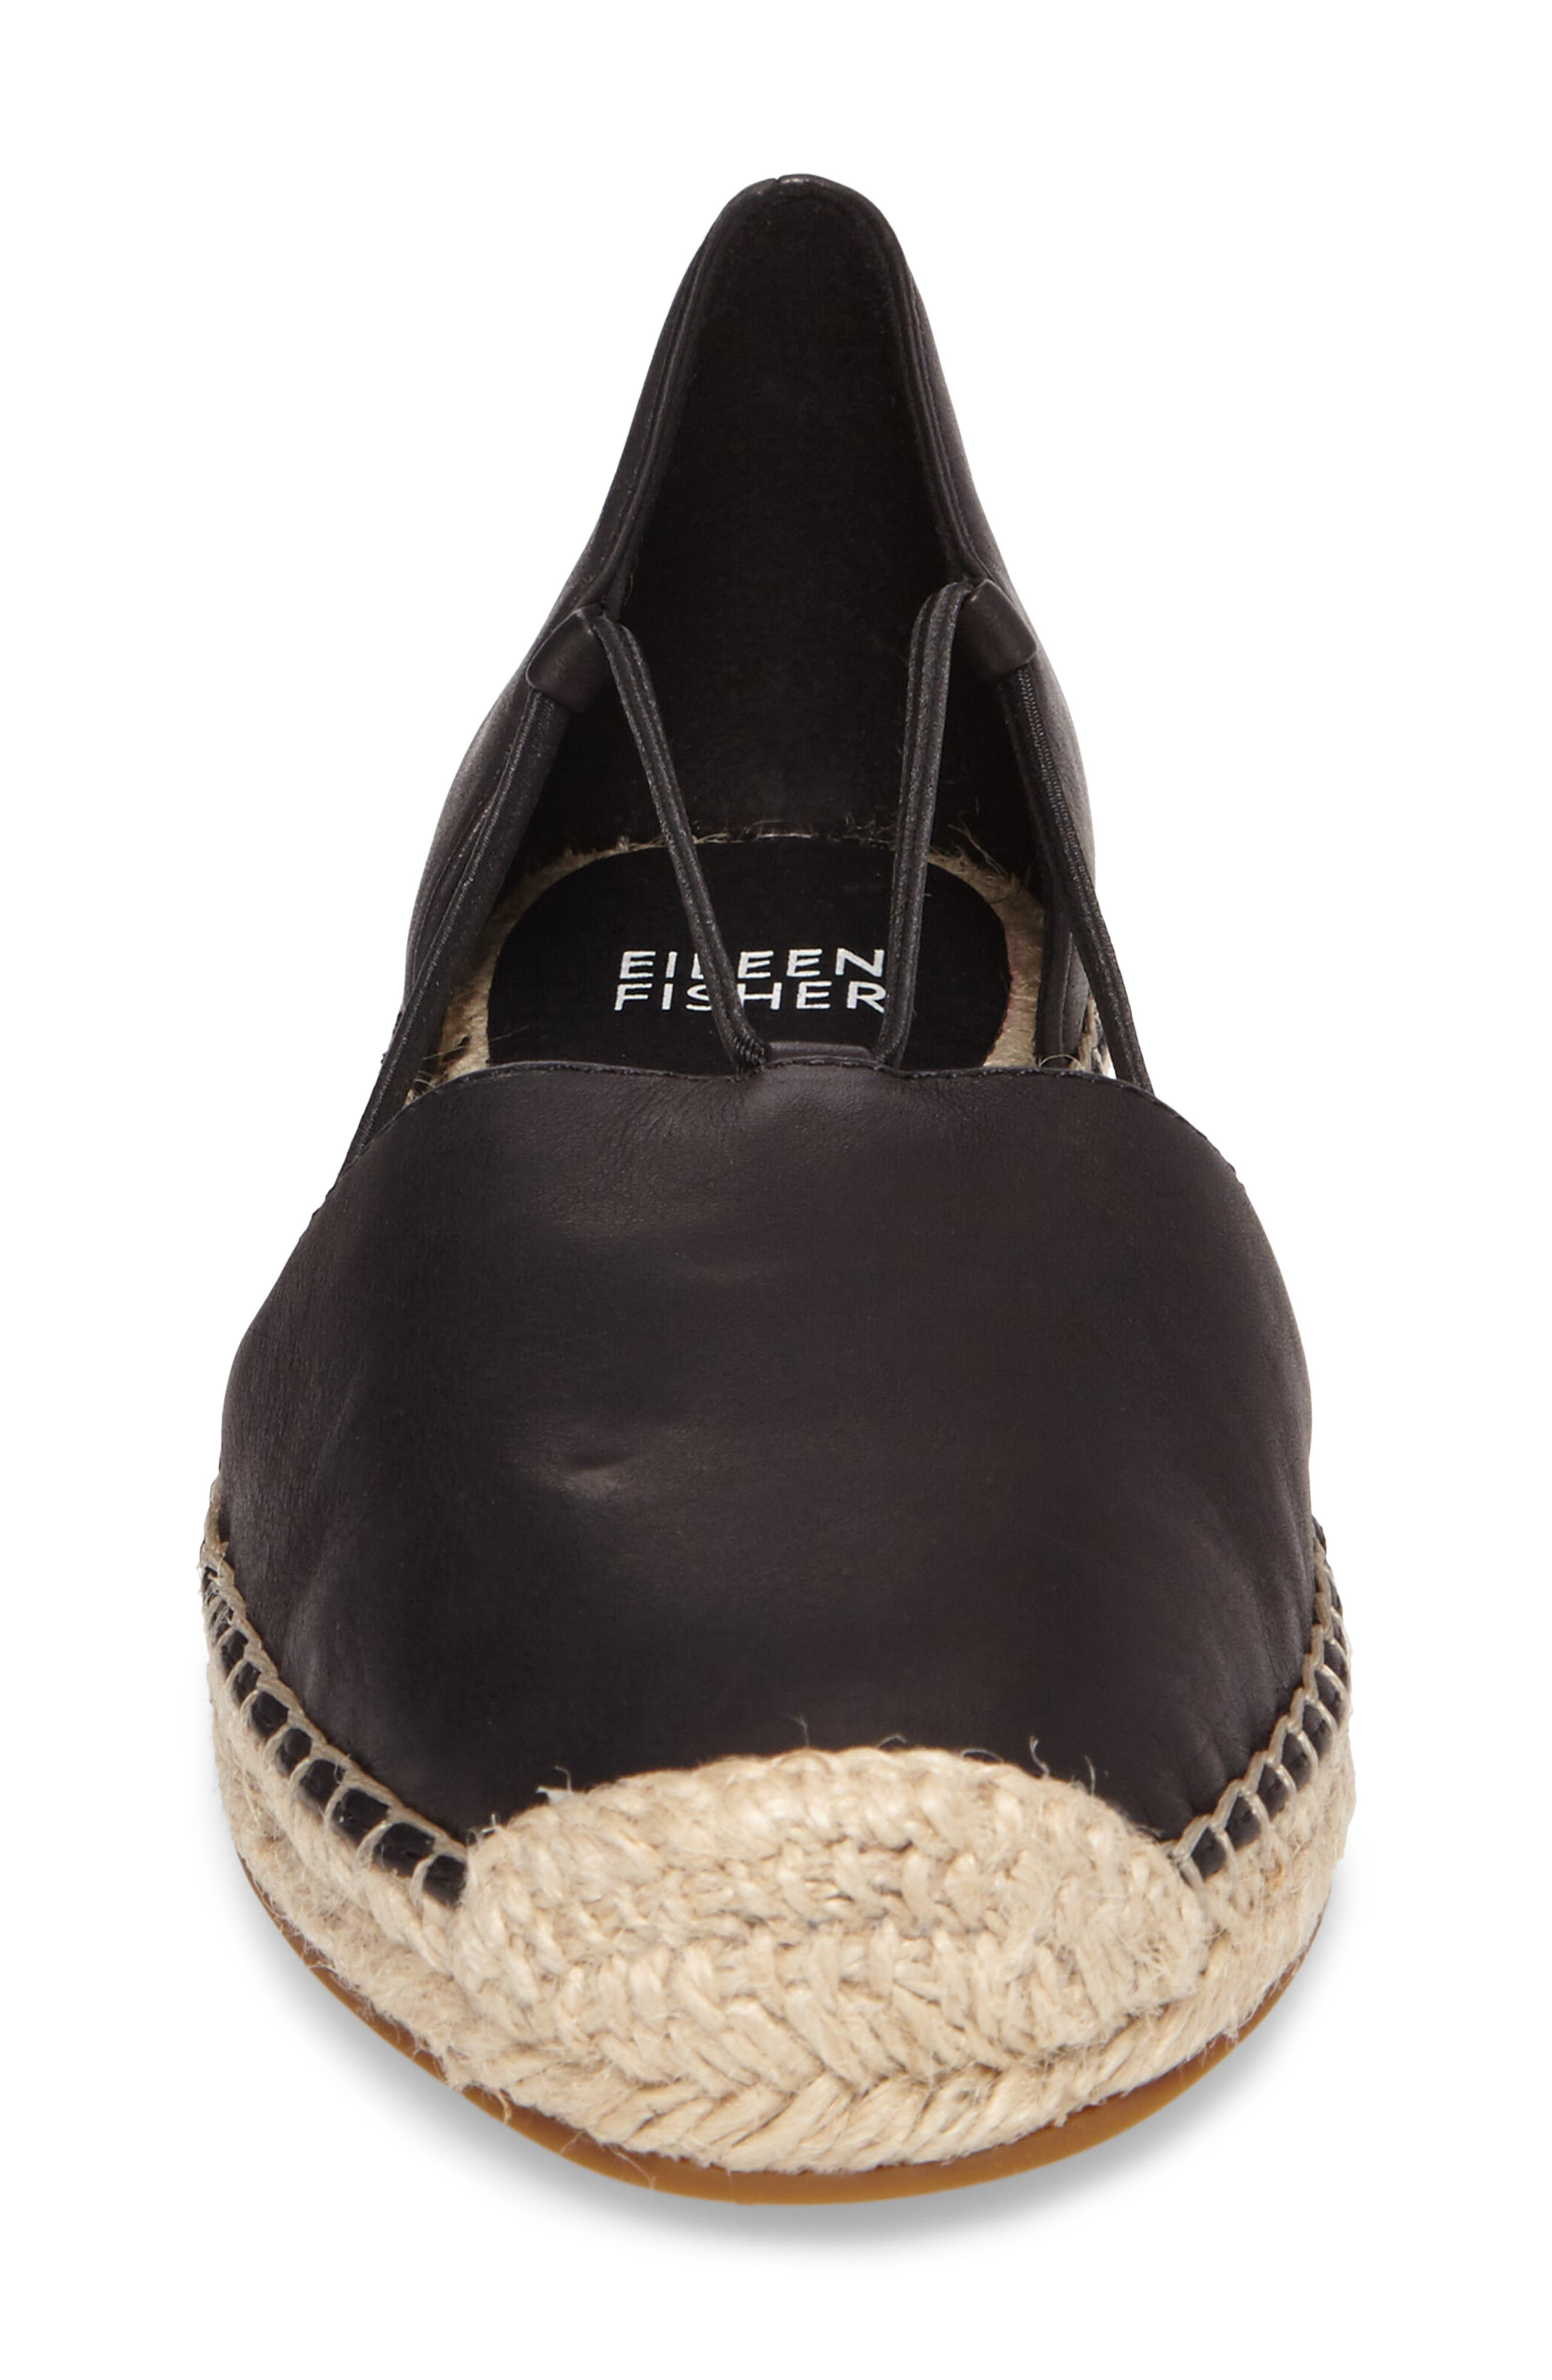 EILEEN FISHER, Lee Espadrille Flat, Alternate thumbnail 4, color, BLACK WASHED LEATHER